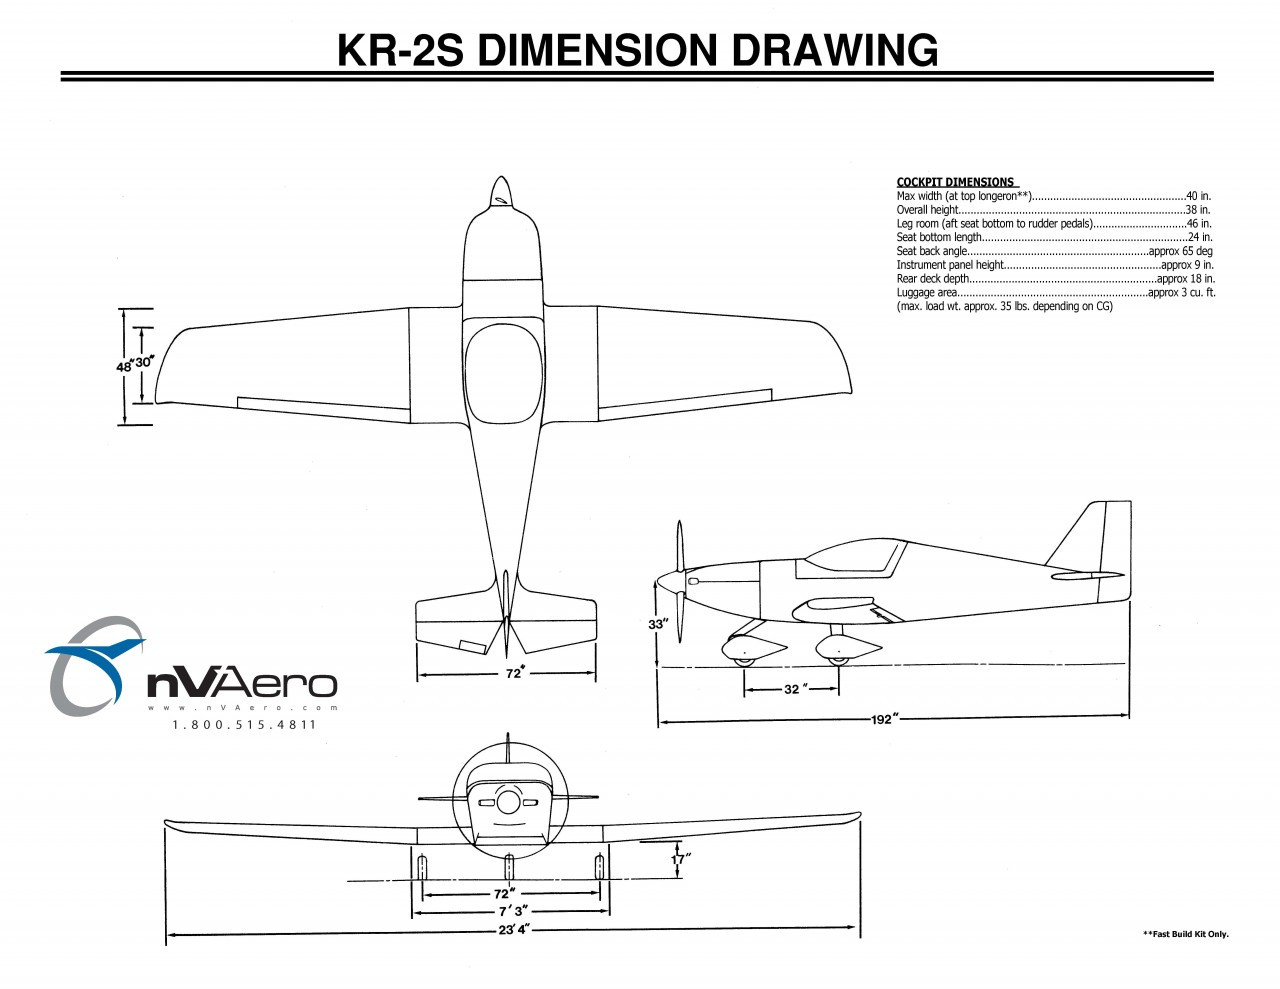 three view drawing of kr 2s and dimensions [ 1280 x 989 Pixel ]